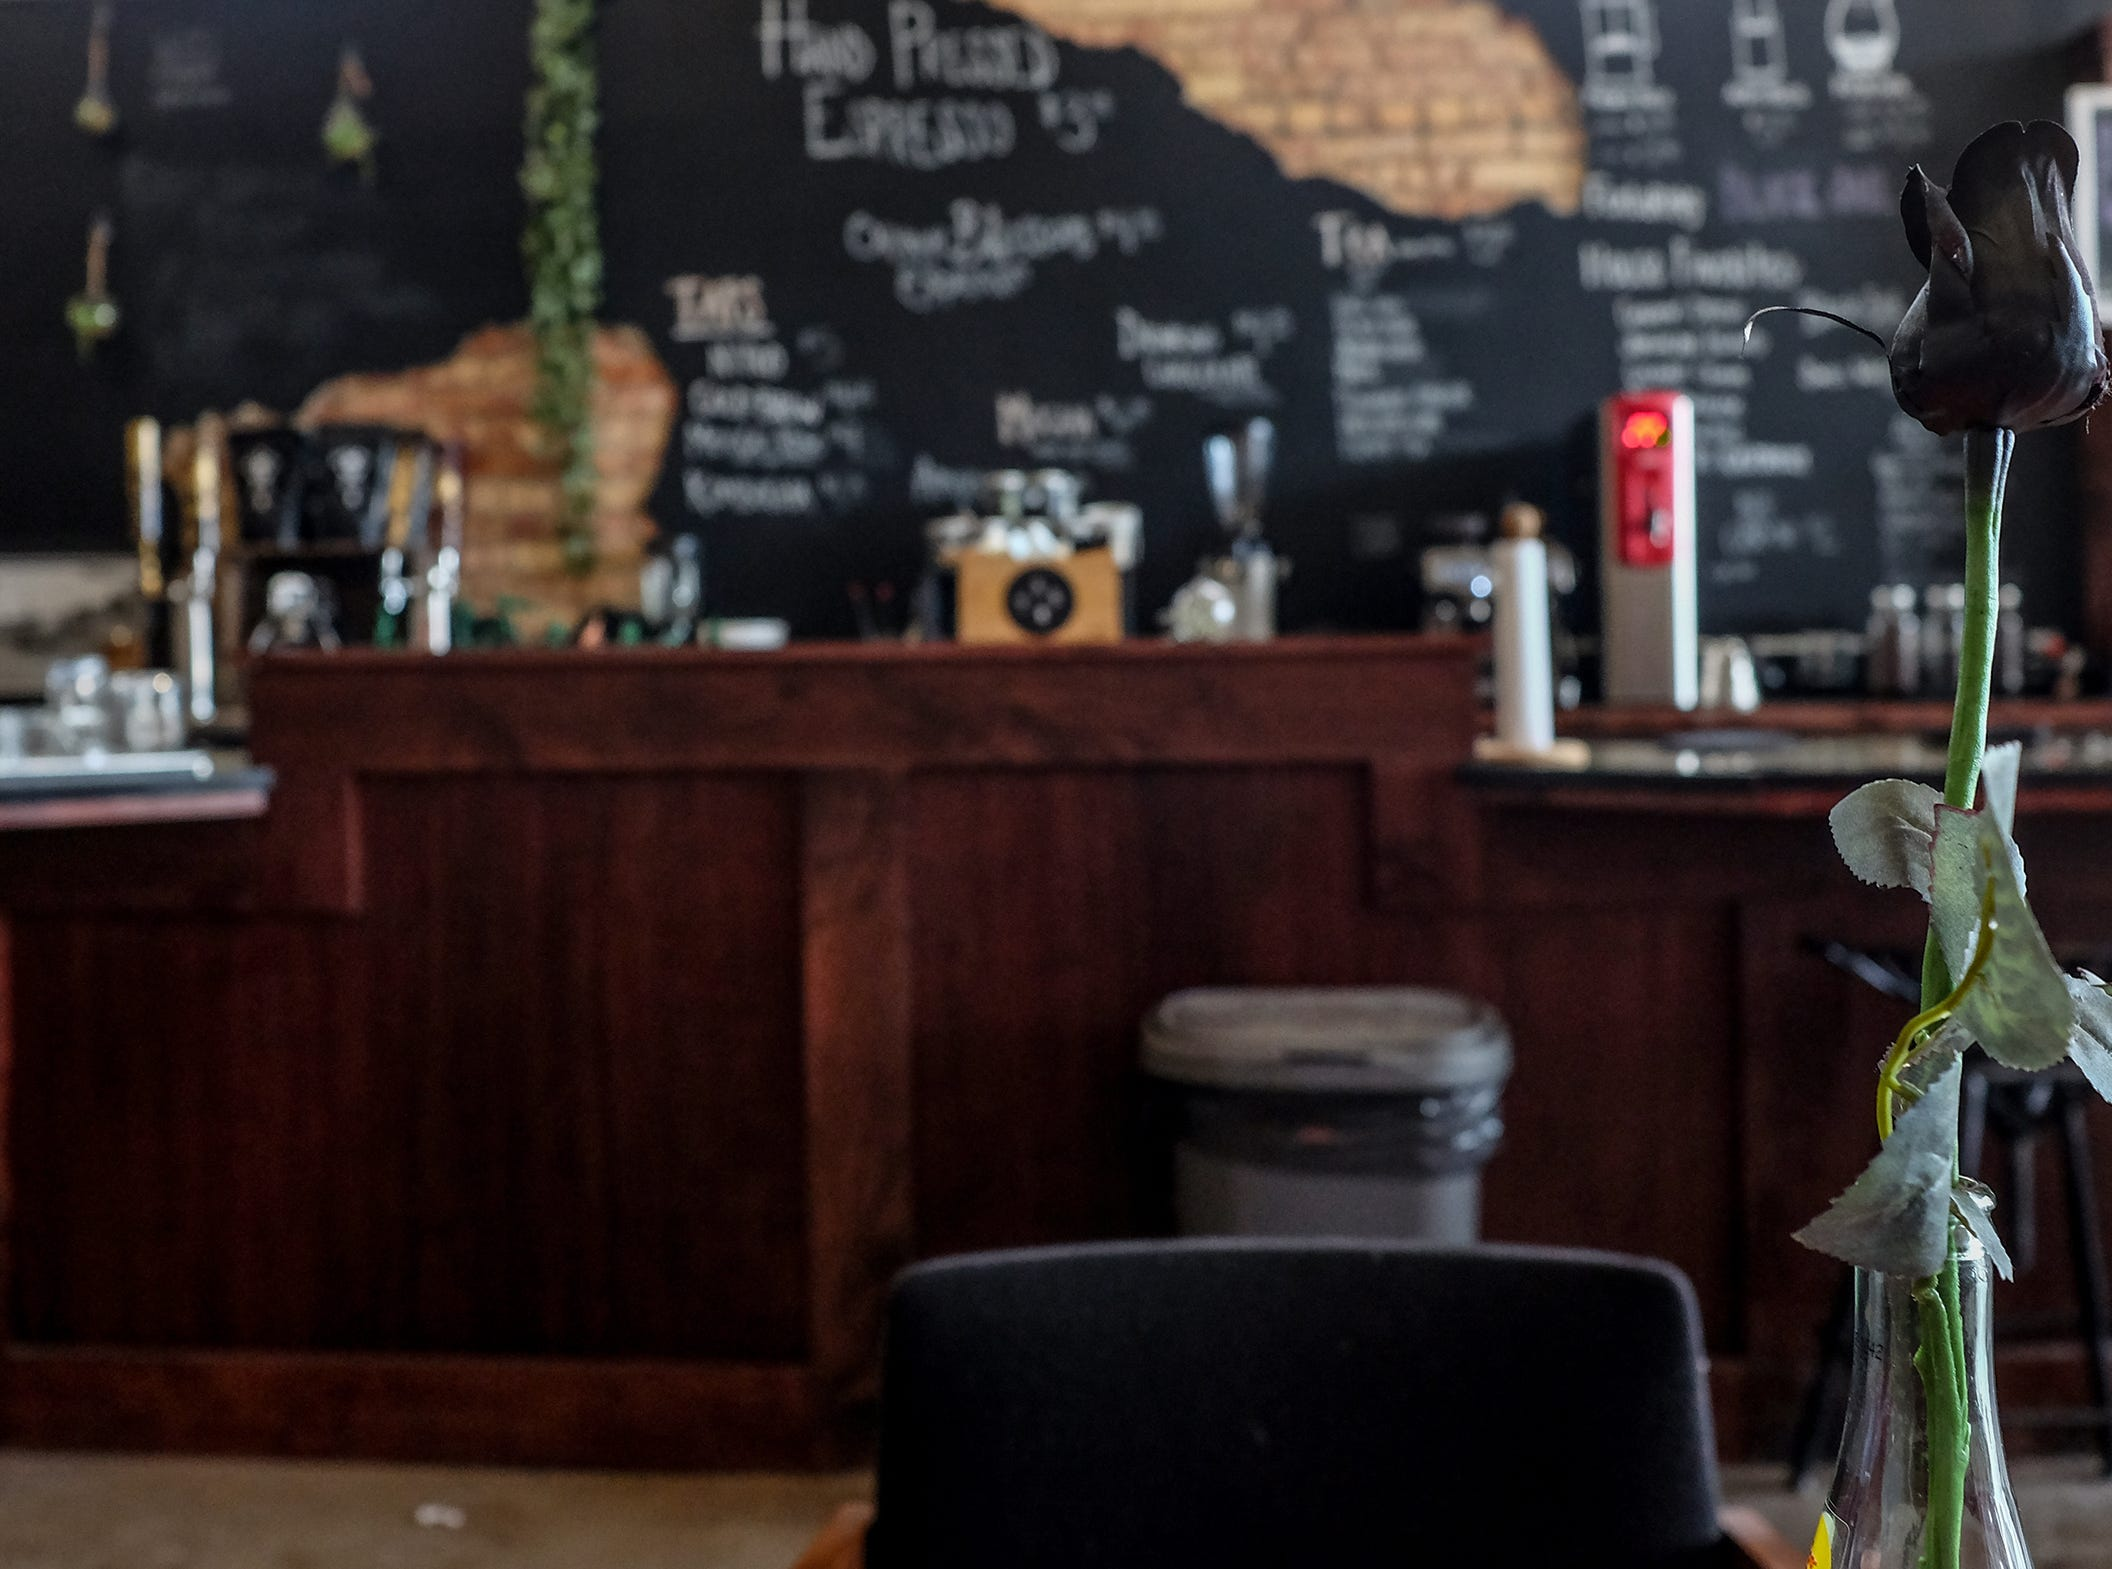 The Crafted Bean in Lansing shown here, and DeWitt, have a unique ambiance as well as craft coffees.